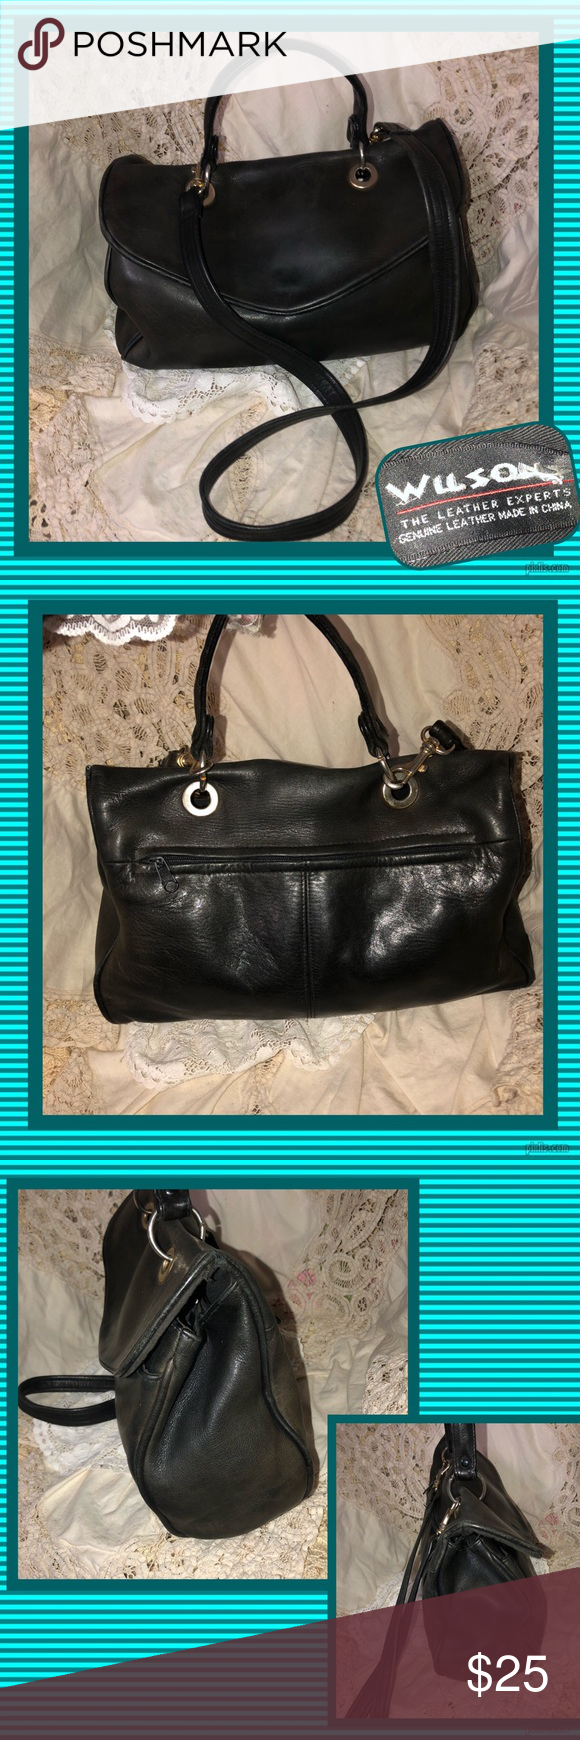 Wilson's Black Leather Satchel USED CONDITION Exterior in